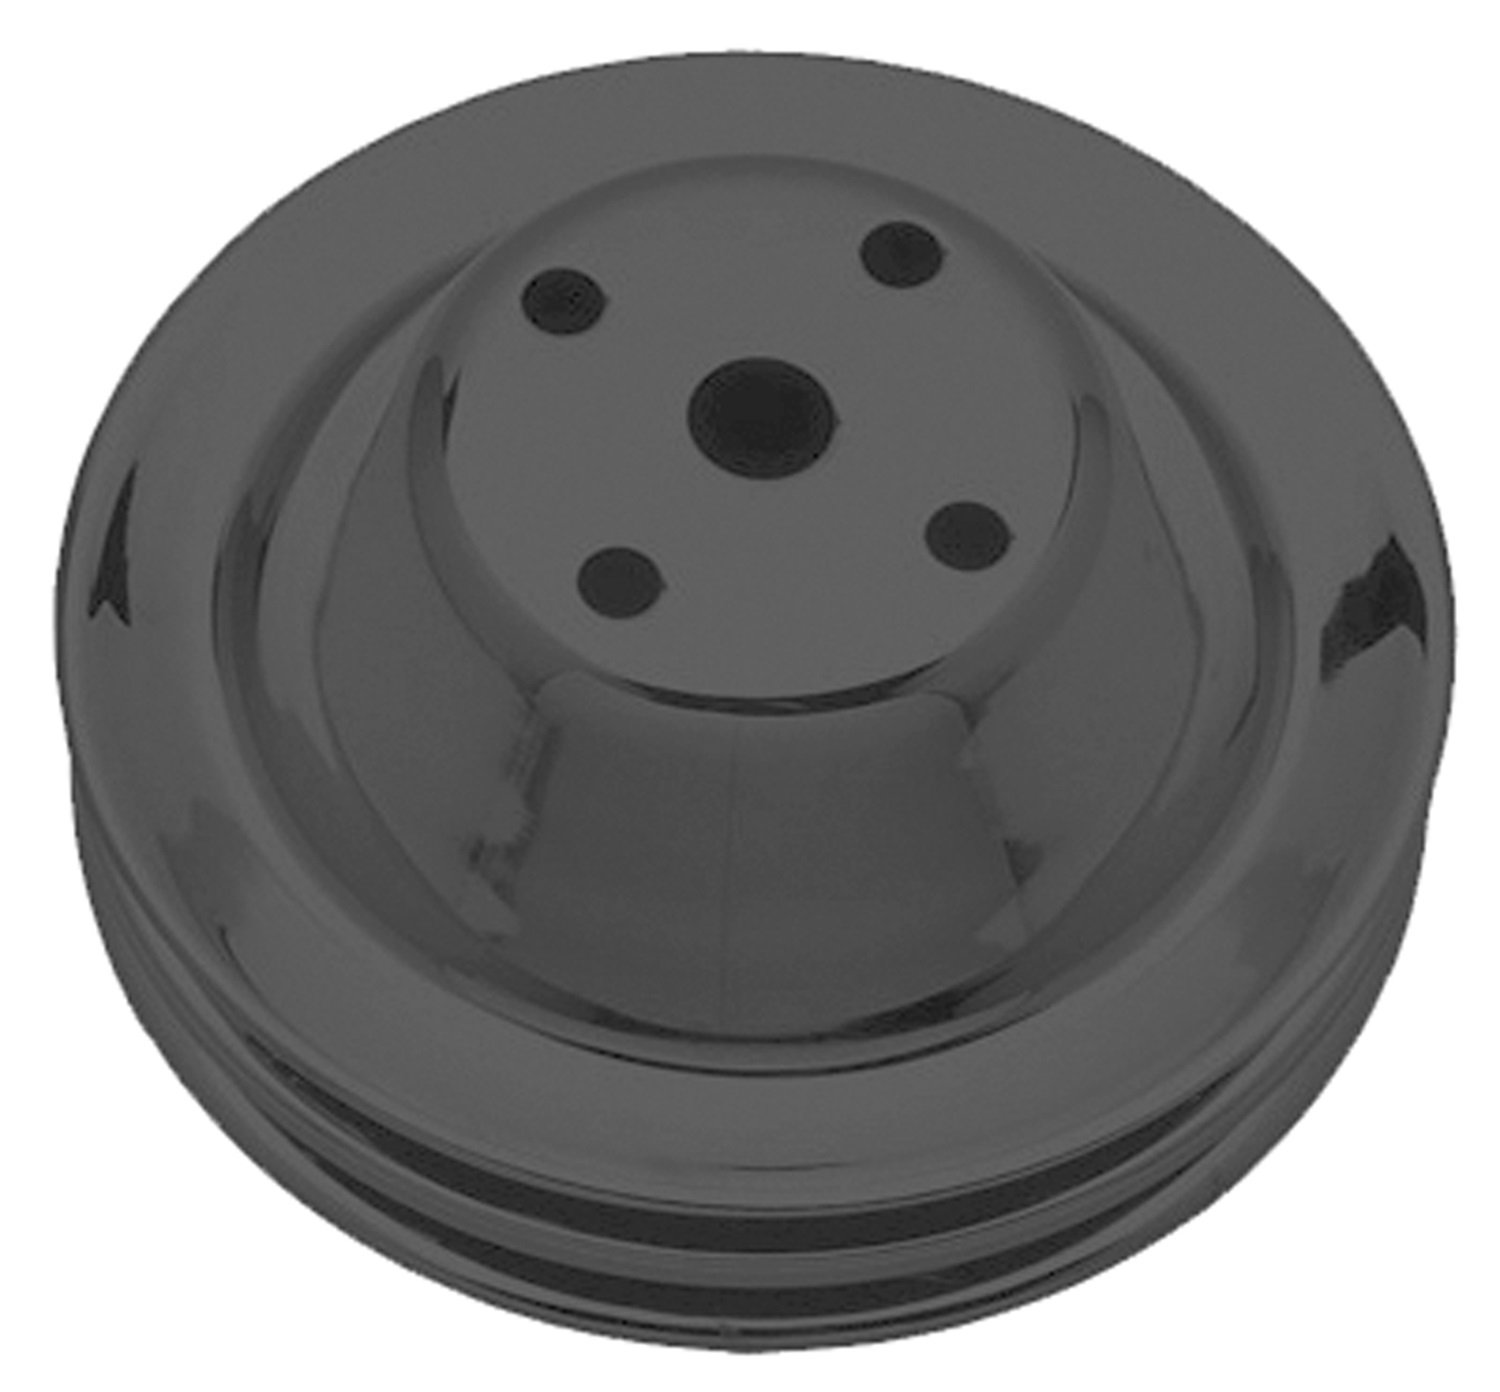 Trans-Dapt Performance 8605 Water Pump Pulley 6.3 in. Dia. 2.25 in. Depth Double Groove Long Style Black Satin Powder Coated Water Pump Pulley